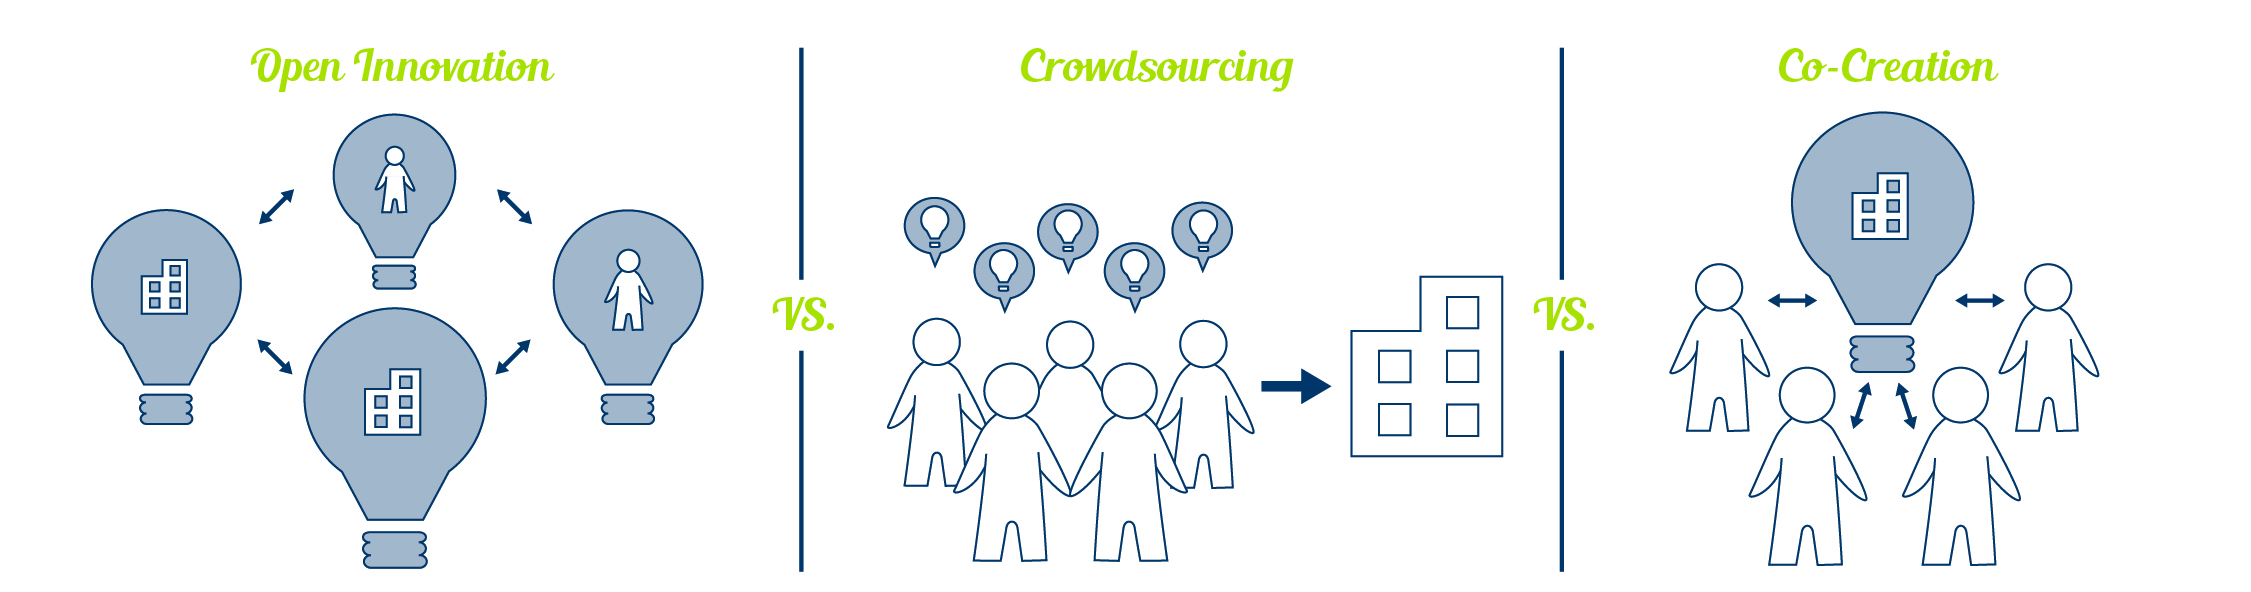 co-creation-vs-crowdsourcing2-01